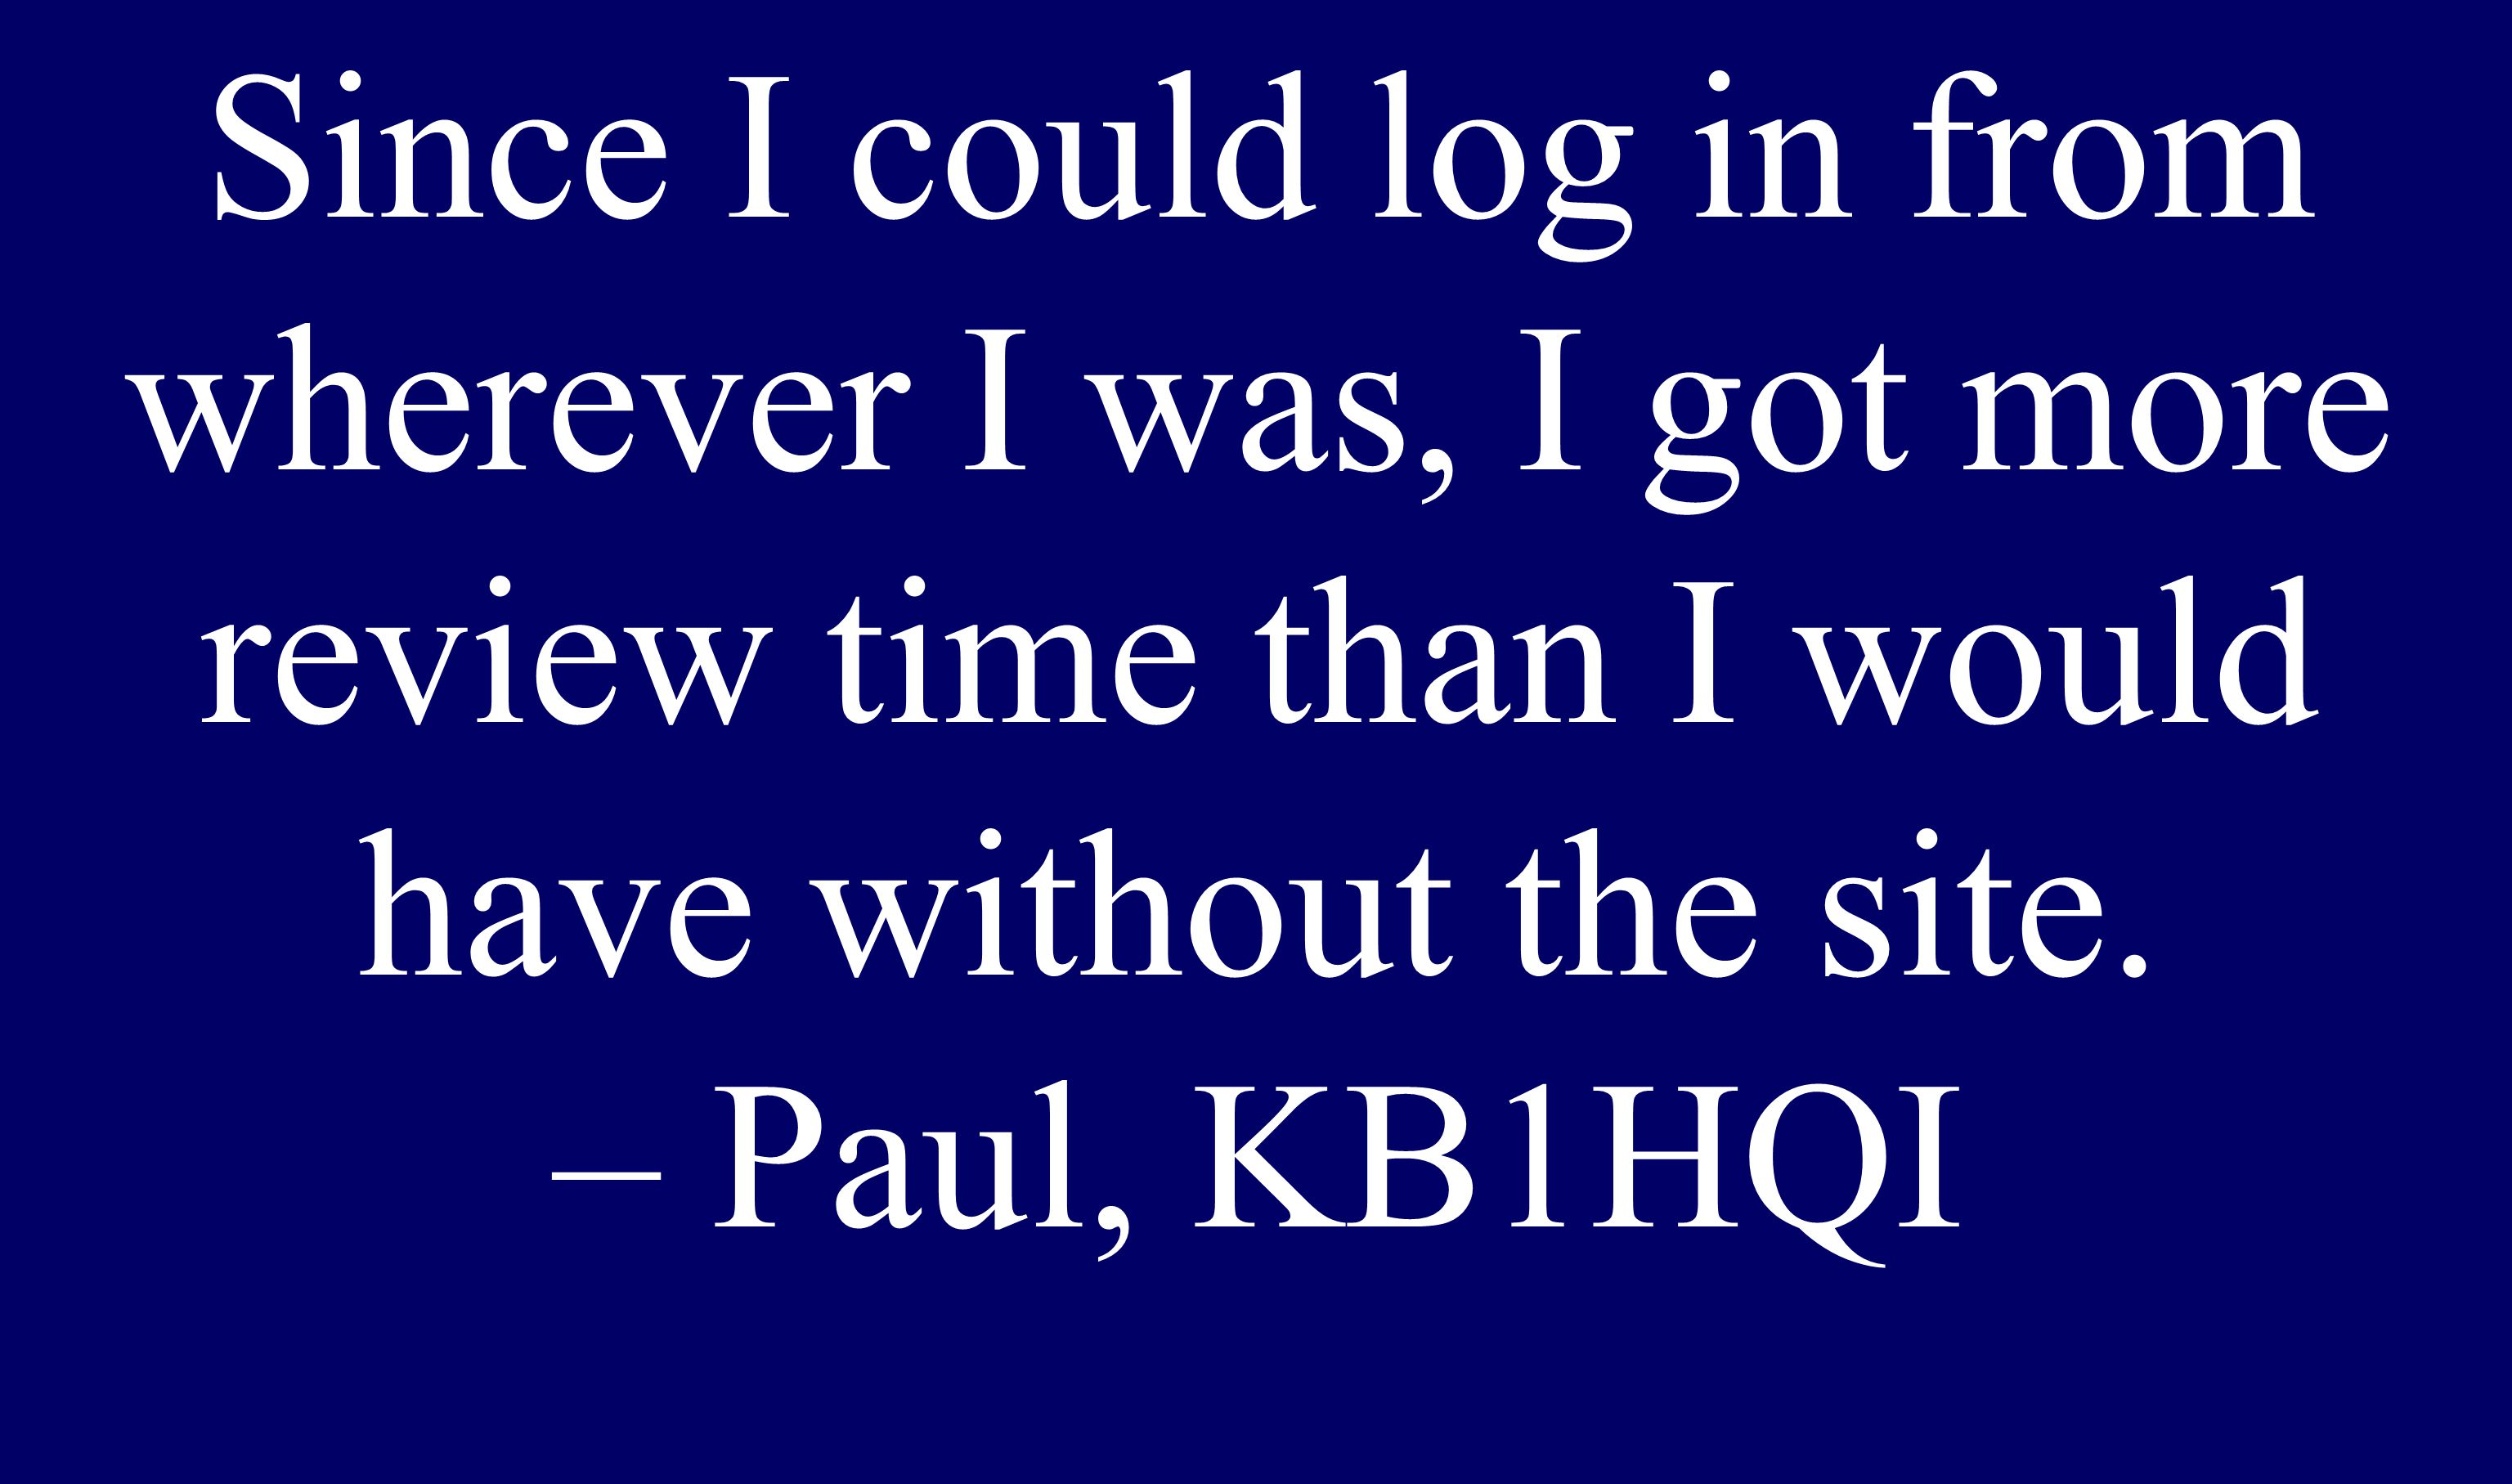 Senior Since I could log in from wherever I was, I got more review time than I would have without the site. – Paul, KB1HQI